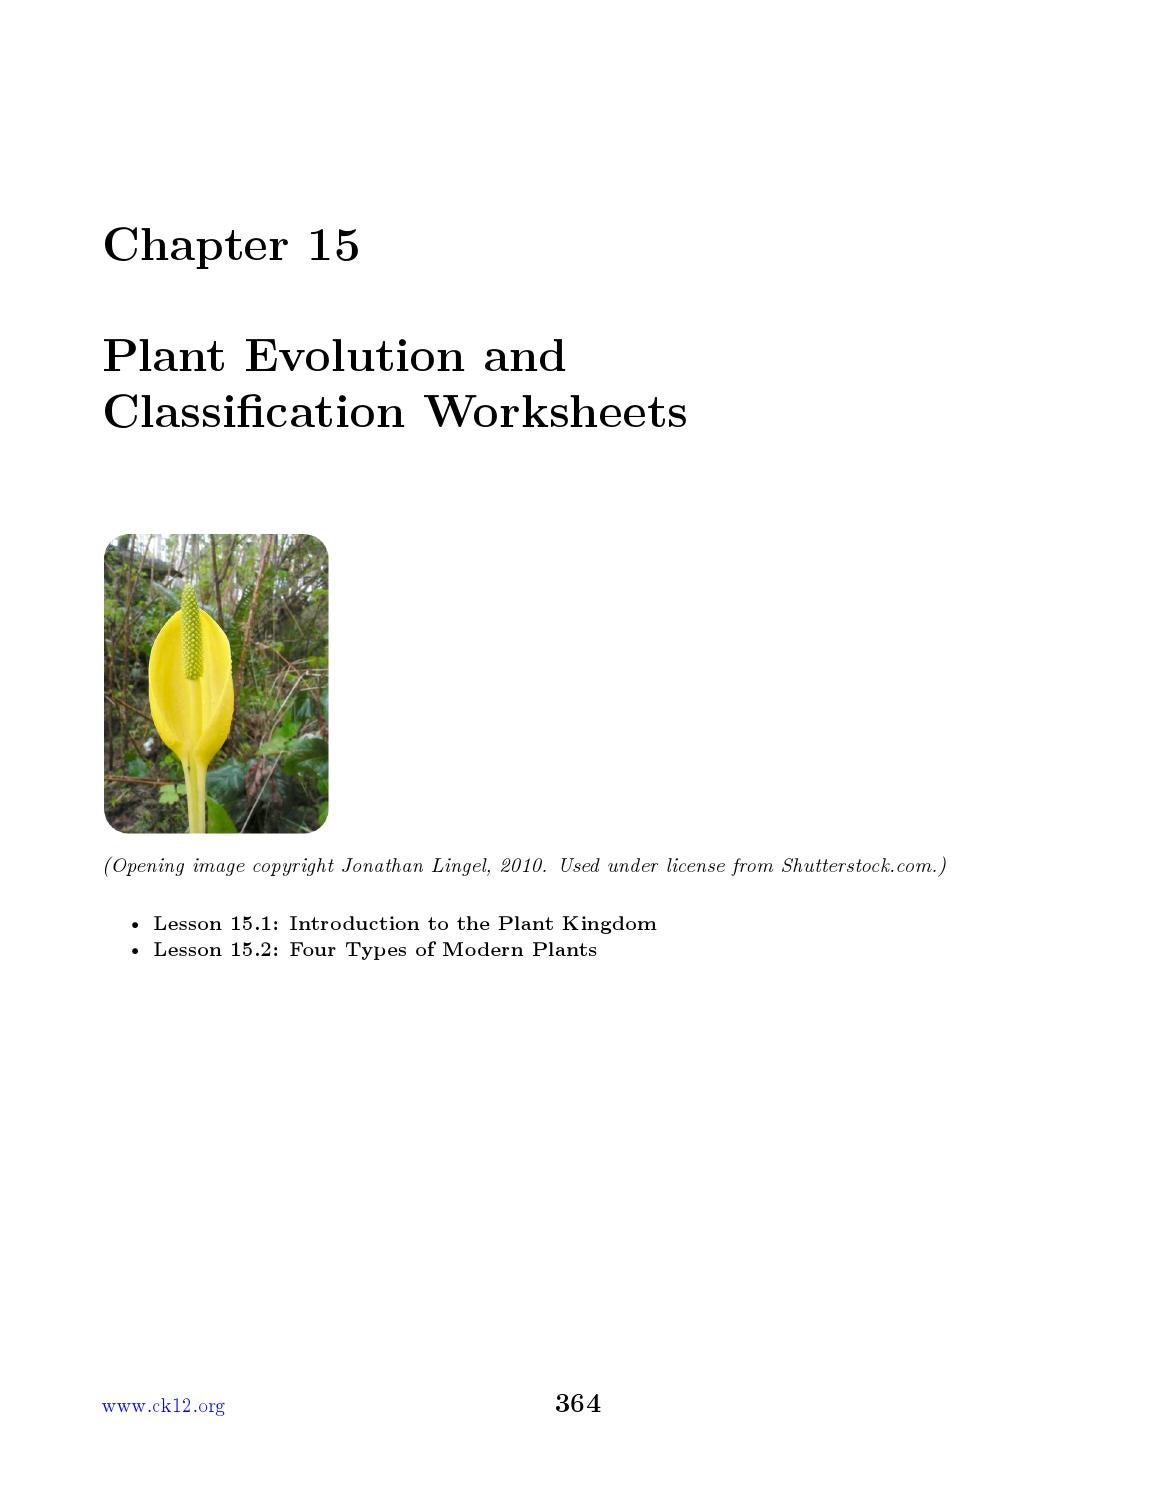 Chapter 15 Ck 12 Biology Chapter 15 Worksheets By Watabec Issuu